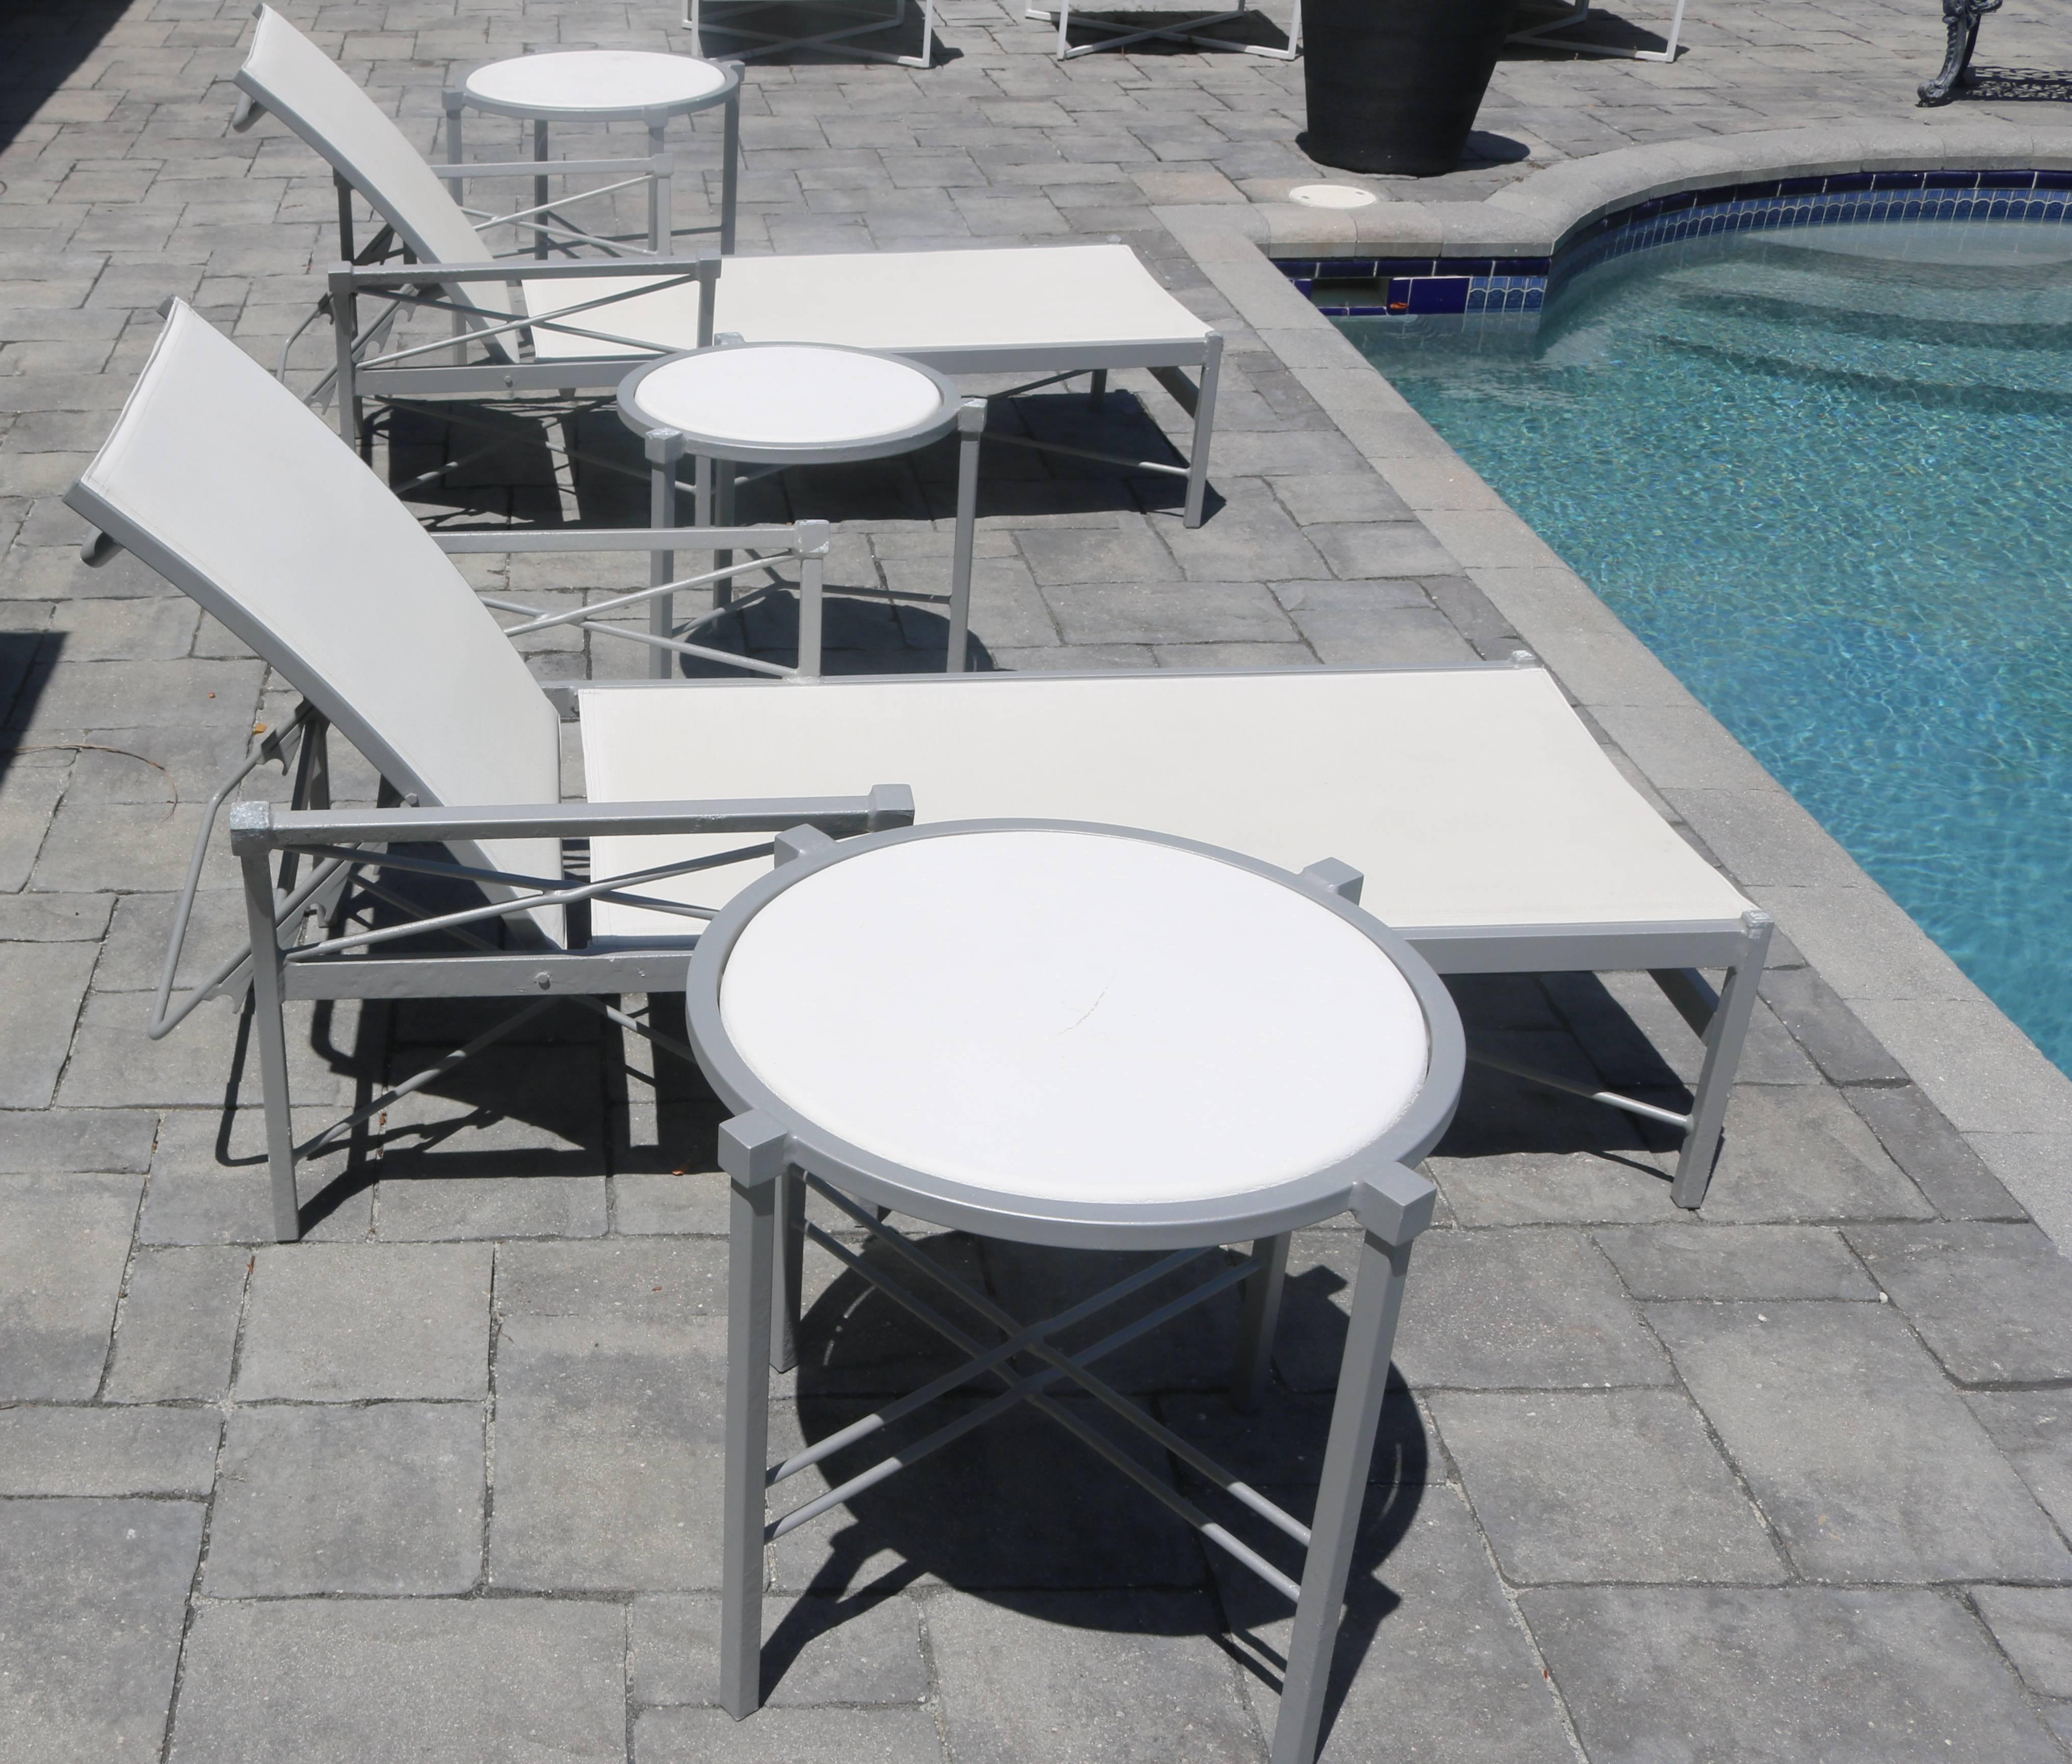 Set Of 11 Pieces Outdoor Pavillion Garden Furniture, Chic Design Gray And  White 2